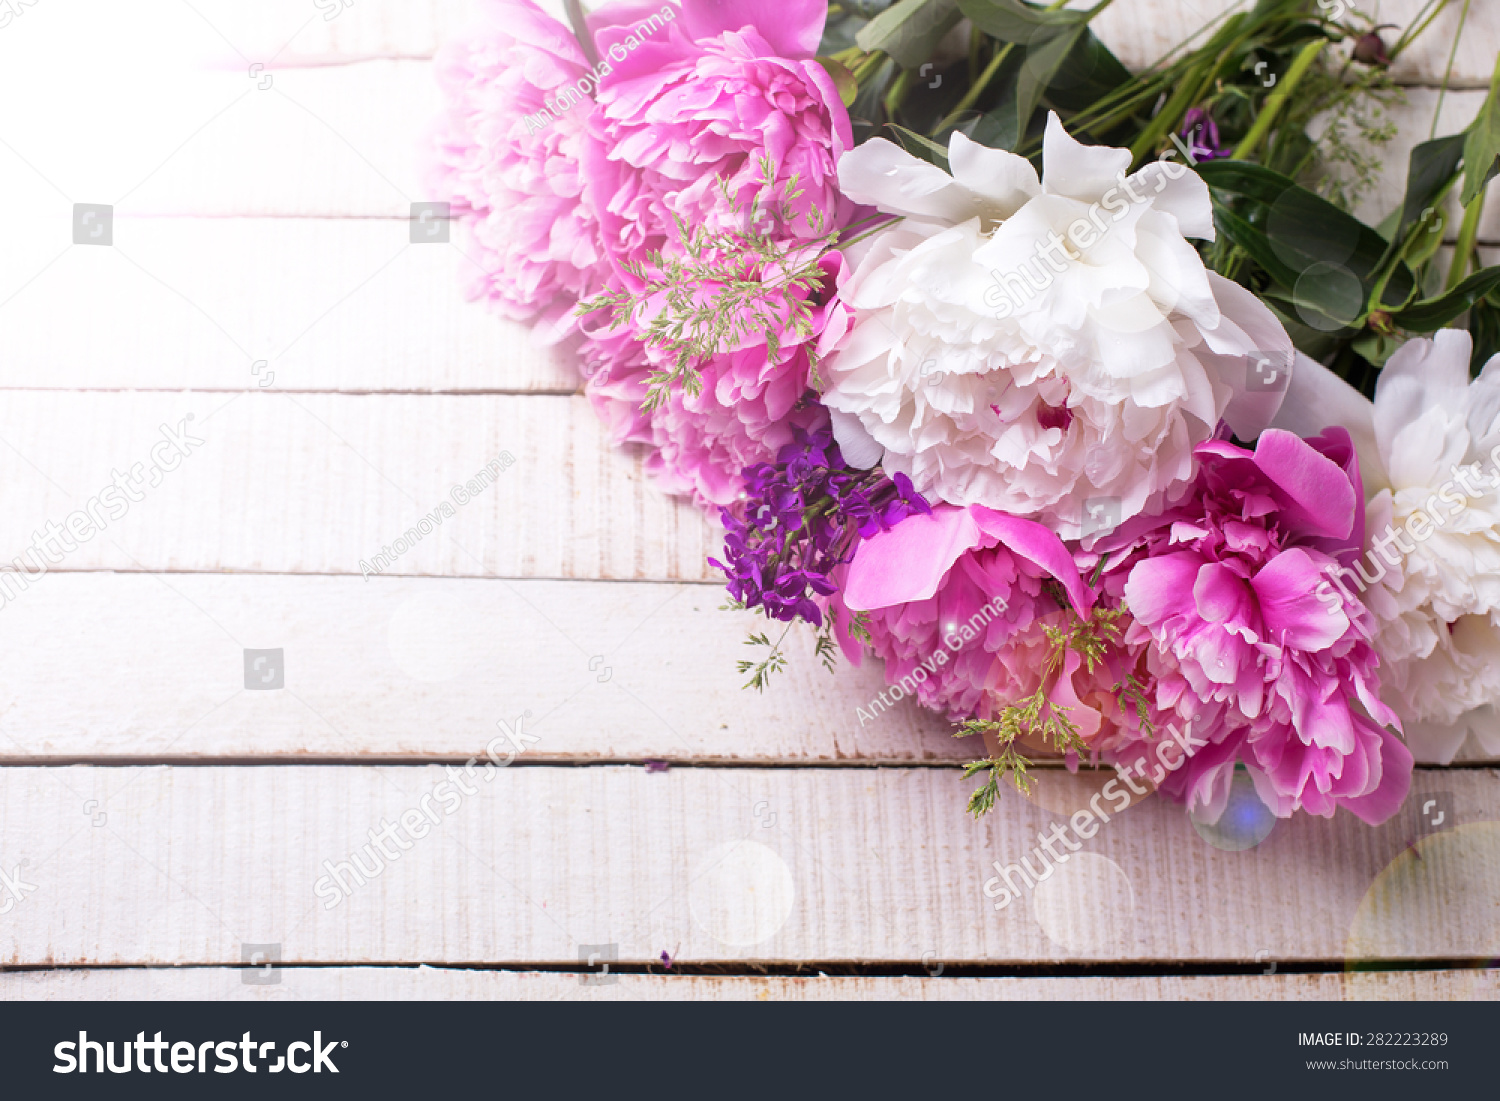 Fresh Pink And White Peonies Flowers In Ray Of Light On White